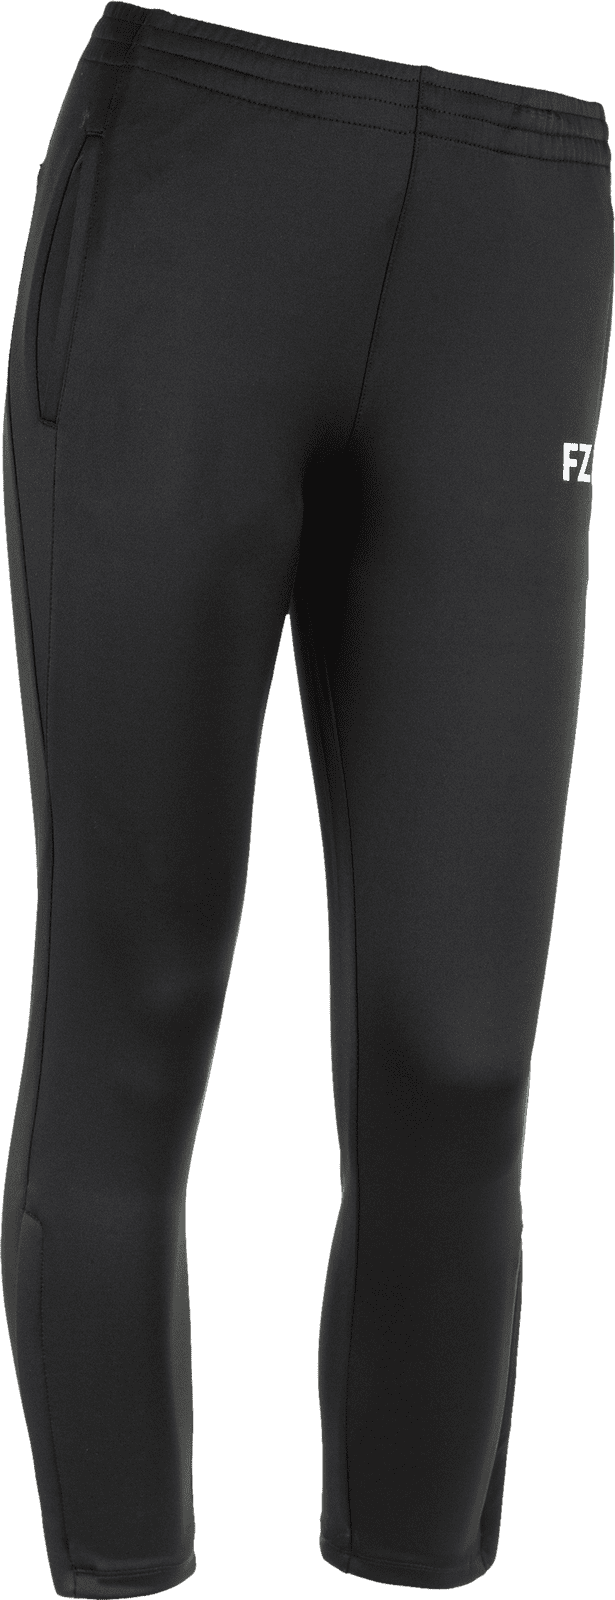 Forza Perry Pant, 96 Black